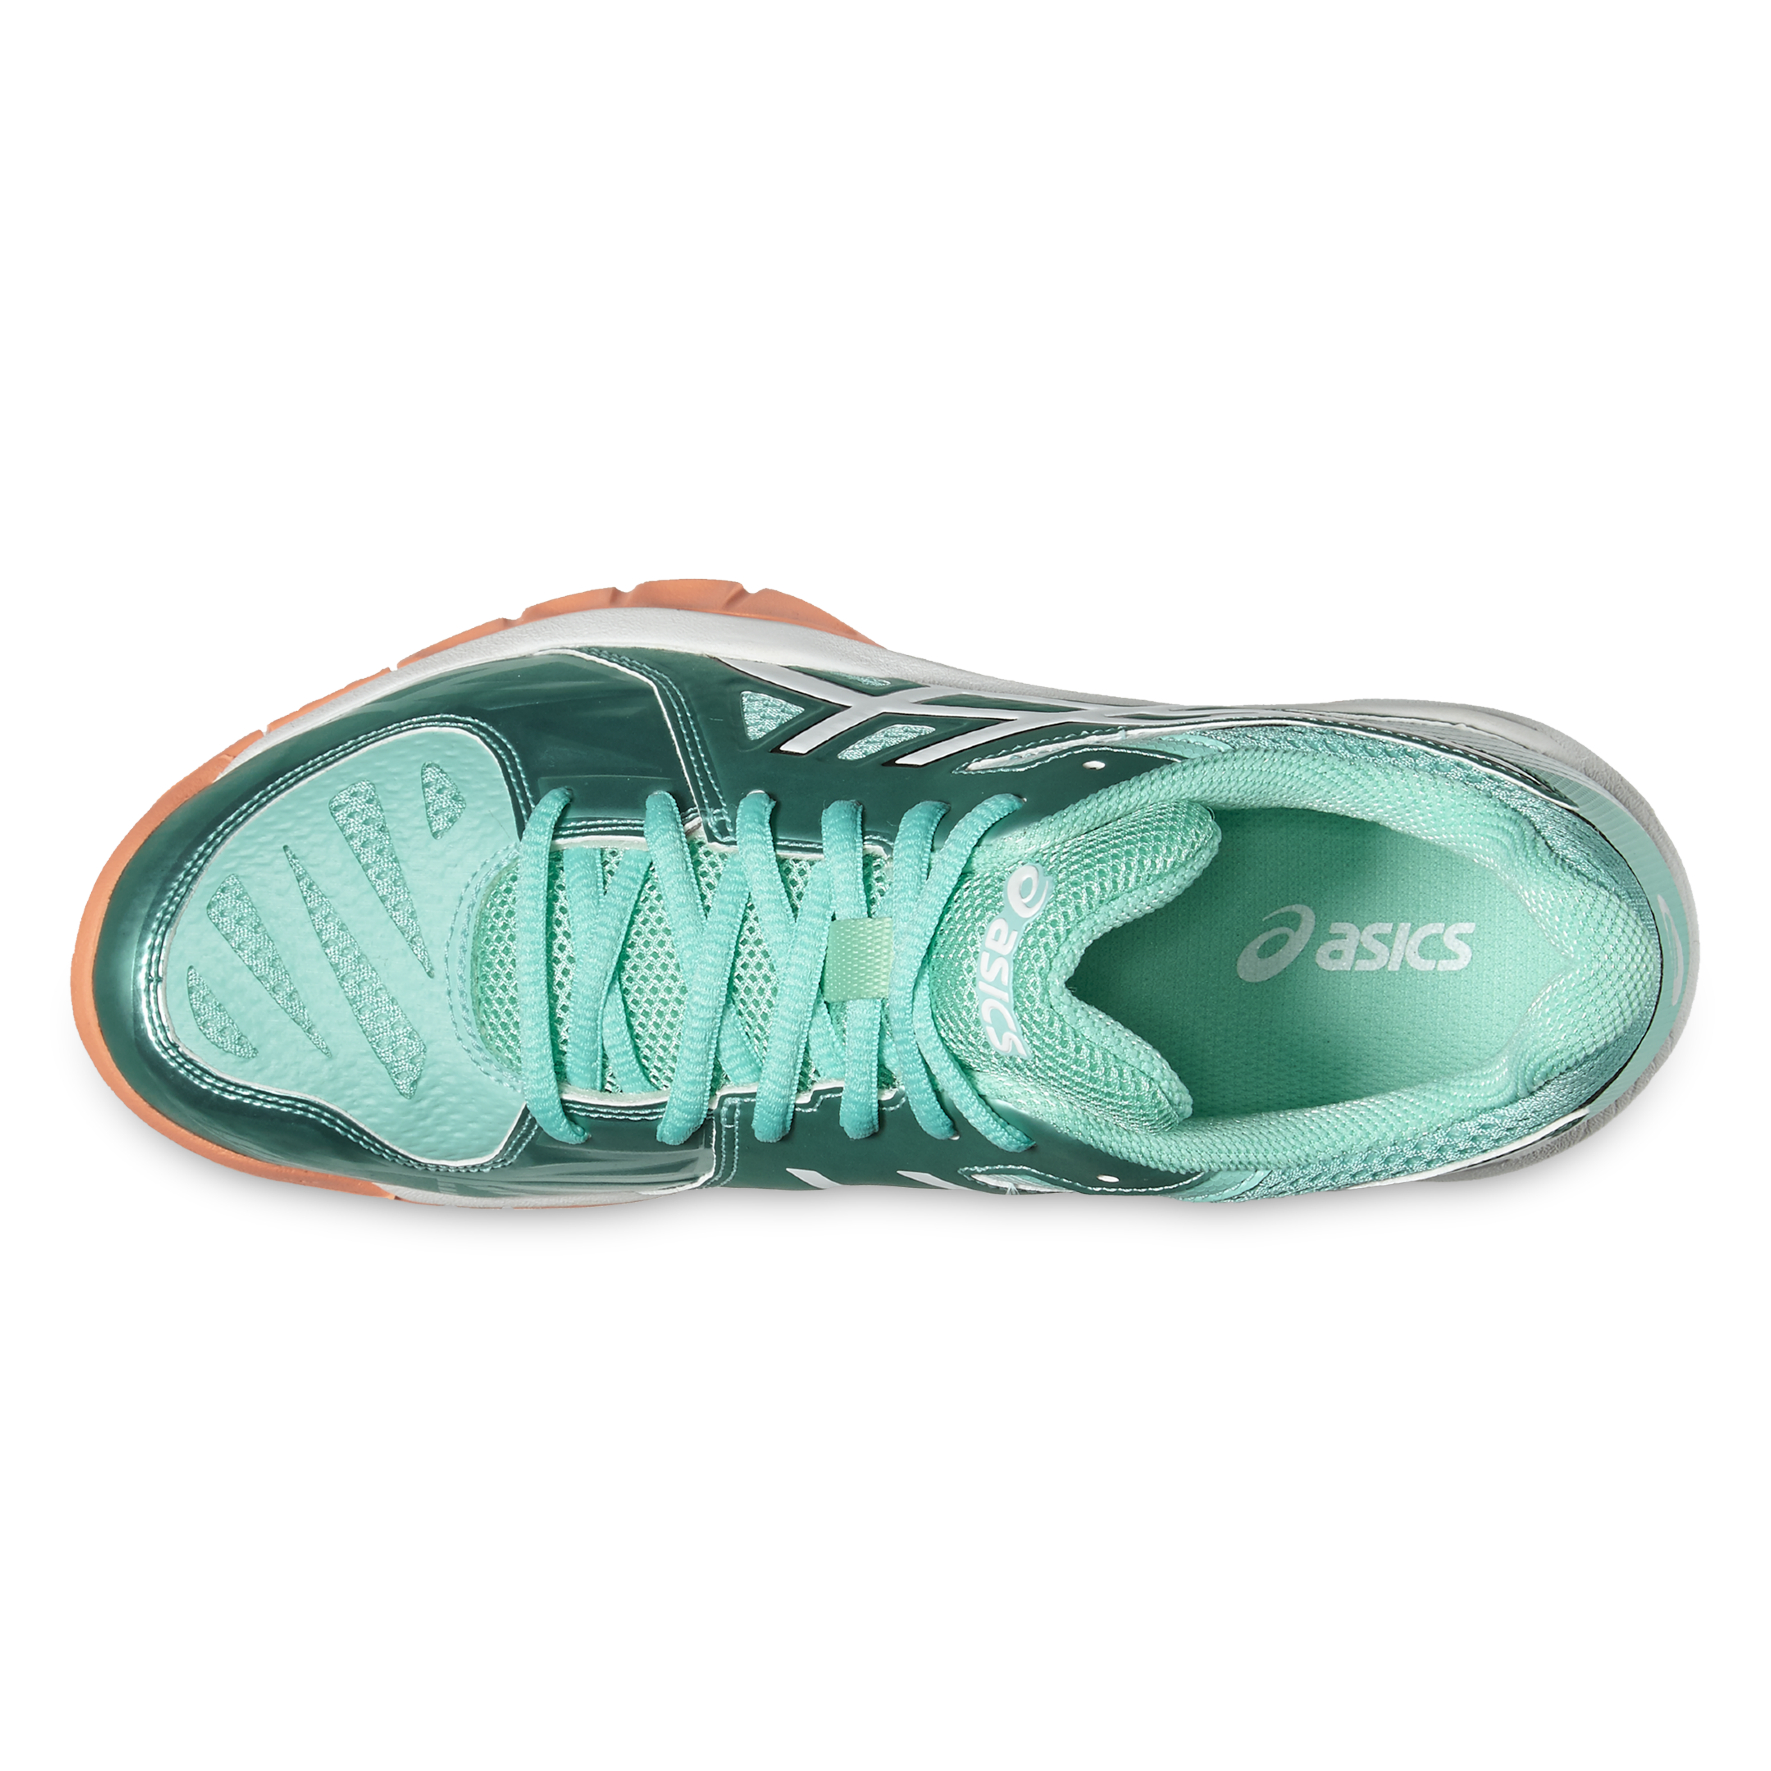 ASICS GEL-Fastball Lady Upper